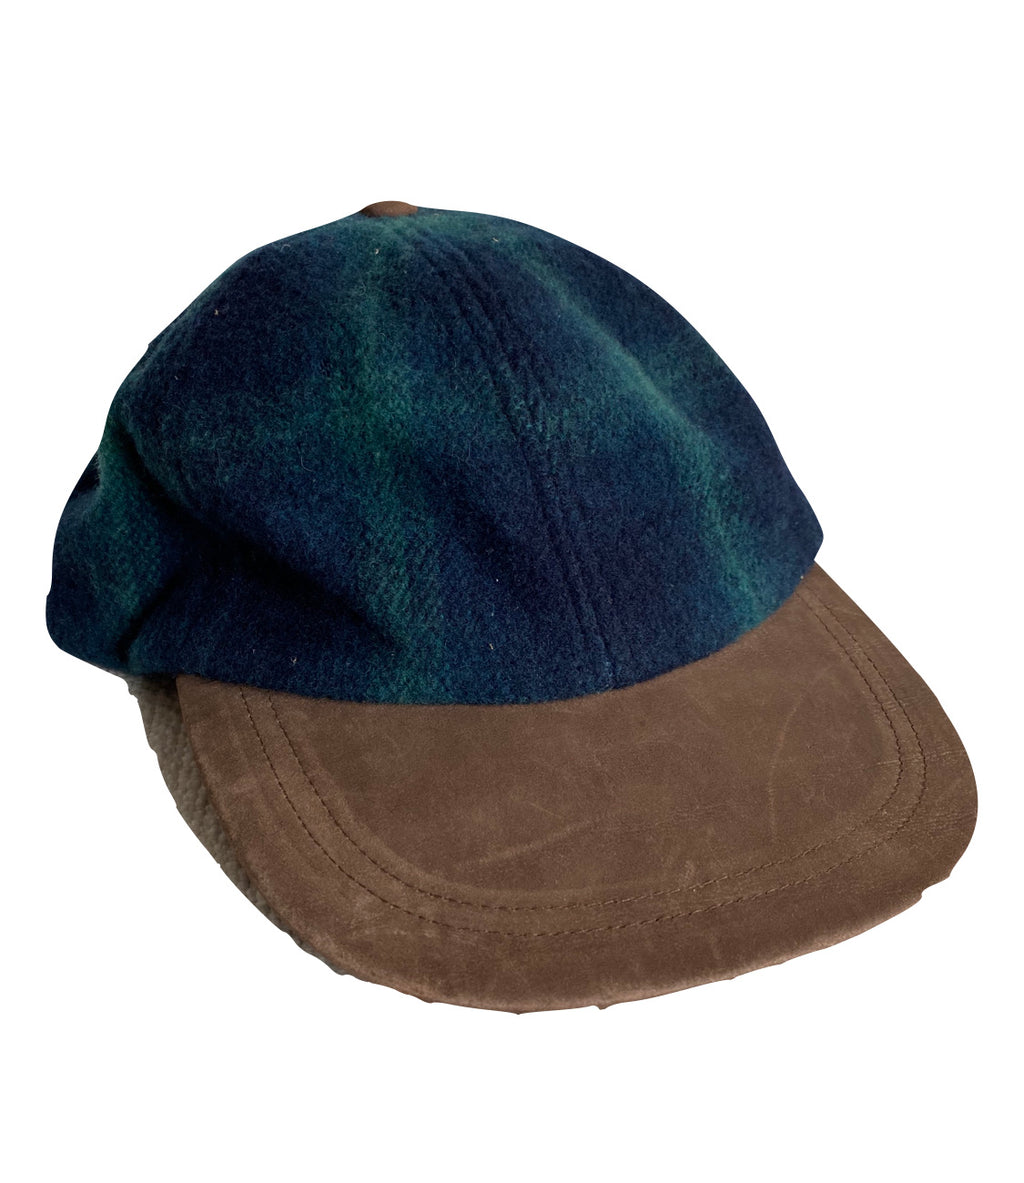 Structure leather and wool hat. Smaller fit